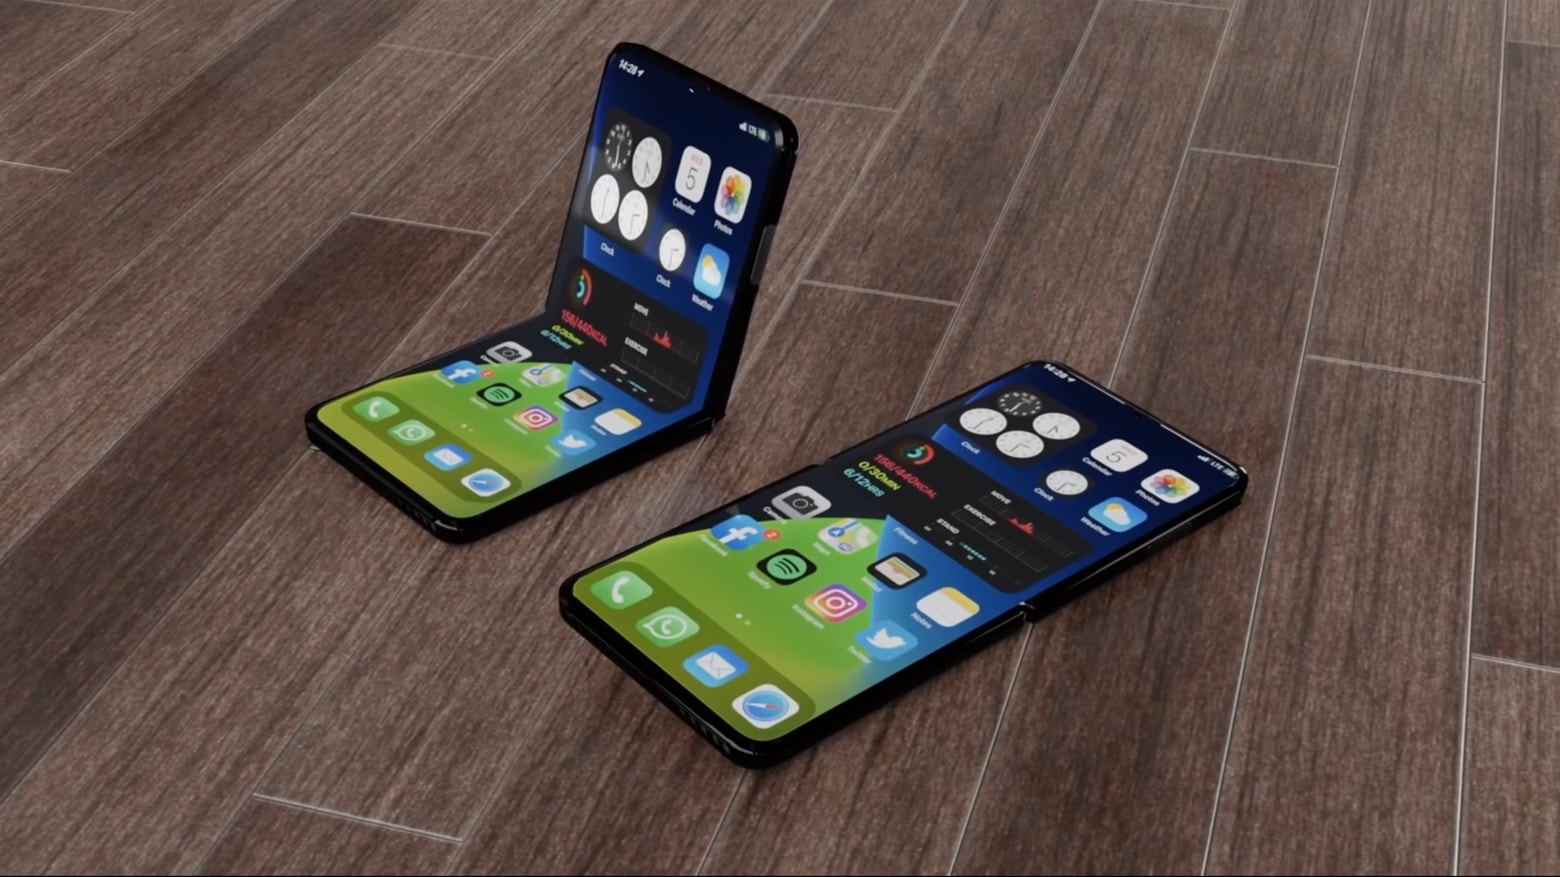 Apple tests two folding iPhone prototypes with different designs